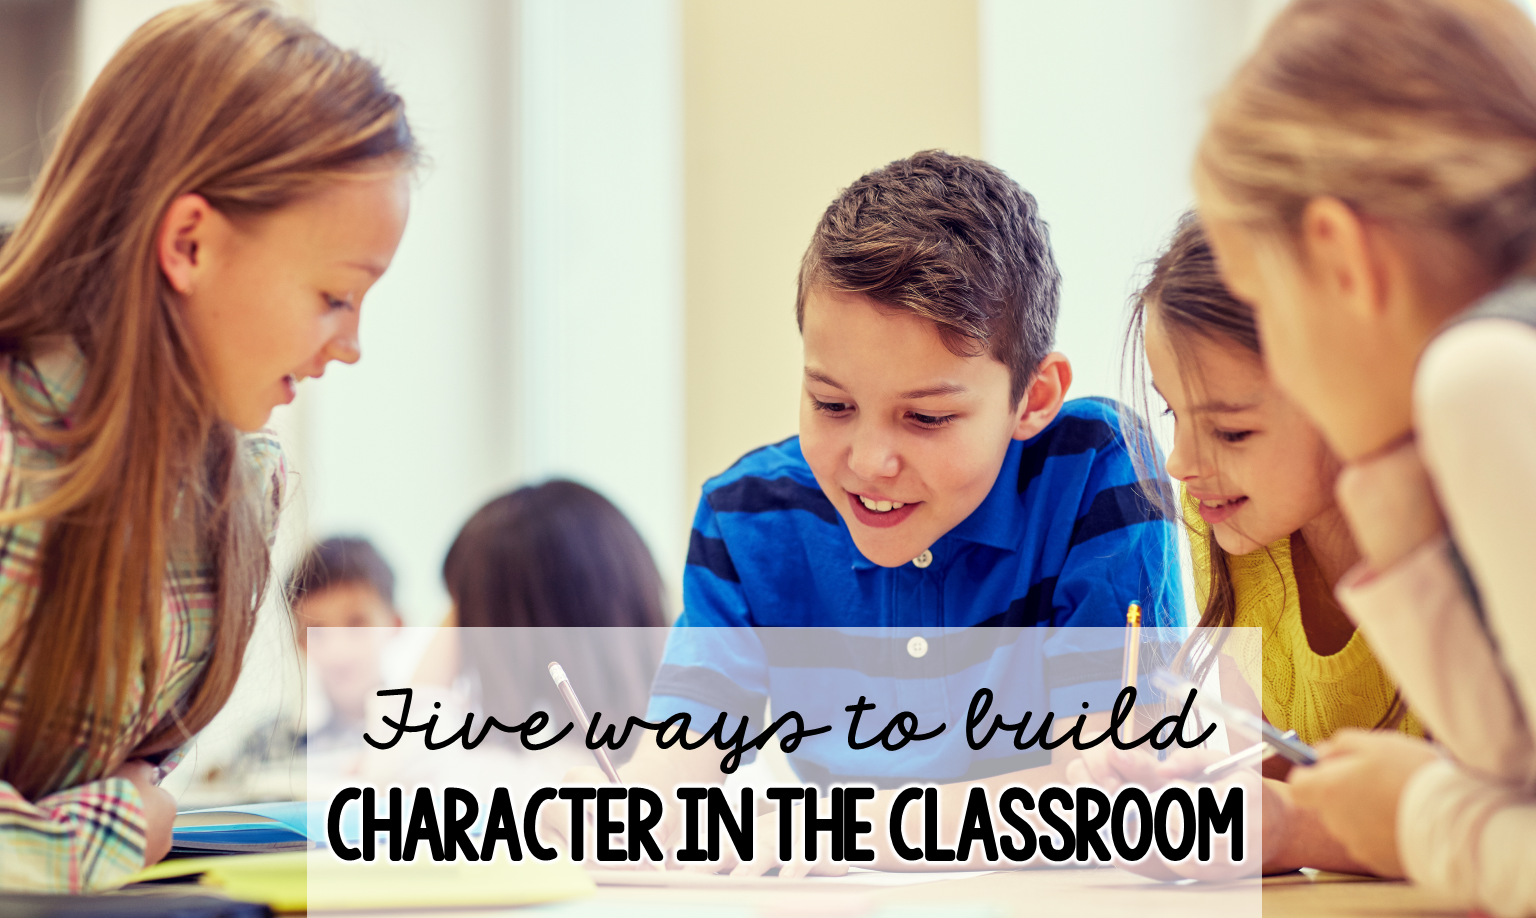 Building character in the classroom is part of building a positive school climate and part of building relationships. In this post, tips are shared to help teachers help students feel they are a valuable member of the team. Free resource included.